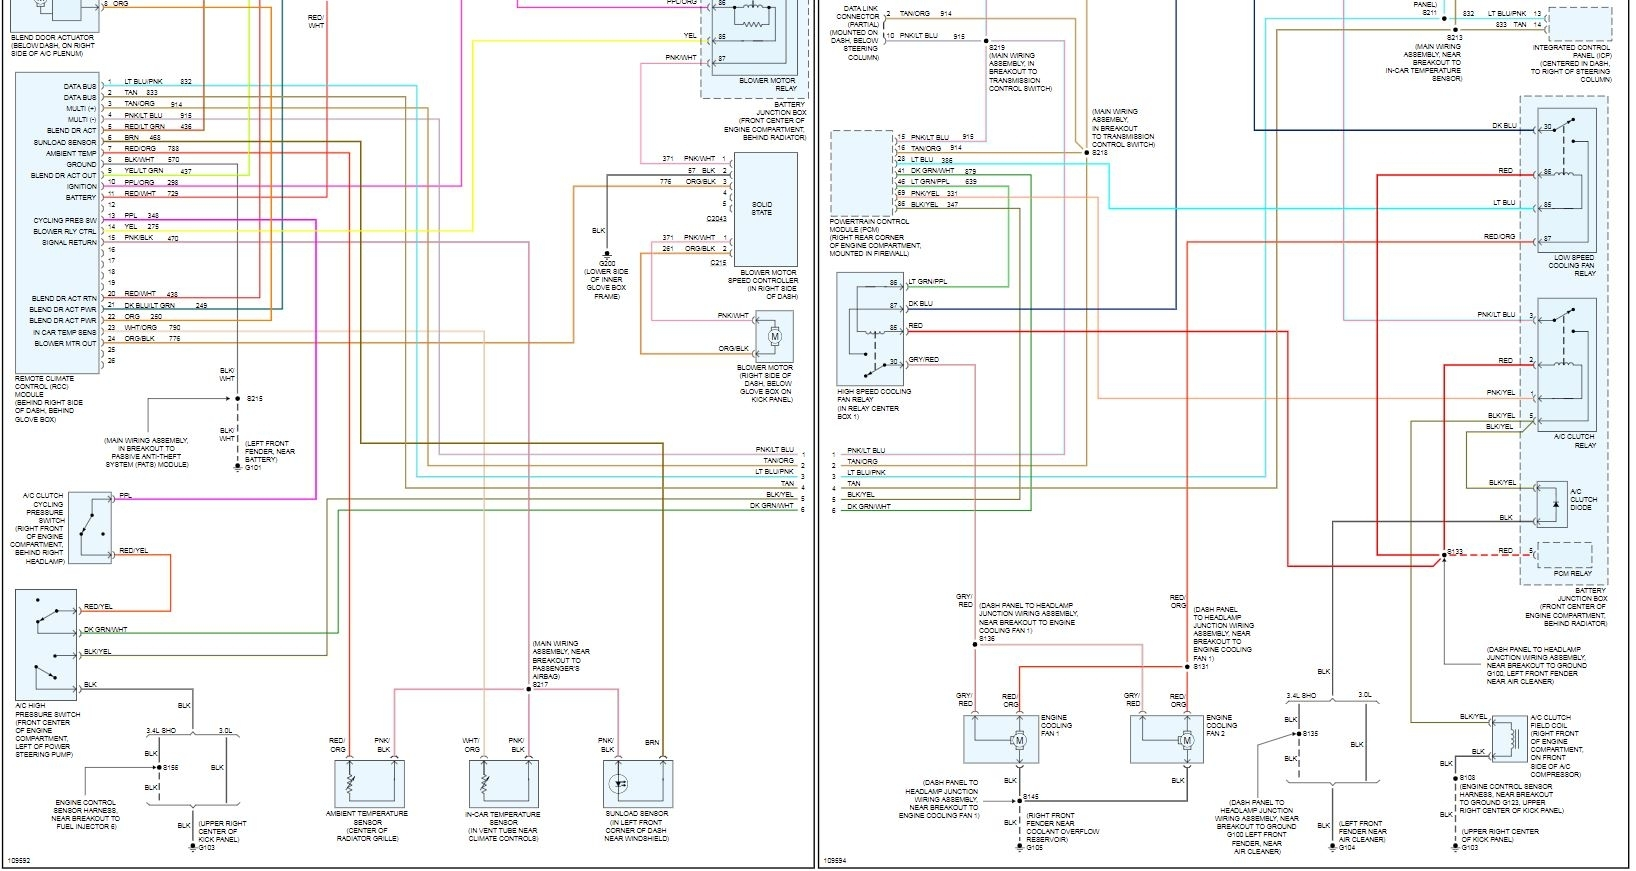 2006 ford taurus fuse box diagram location of heater fuse or relay hi  blower motor for heater and  location of heater fuse or relay hi